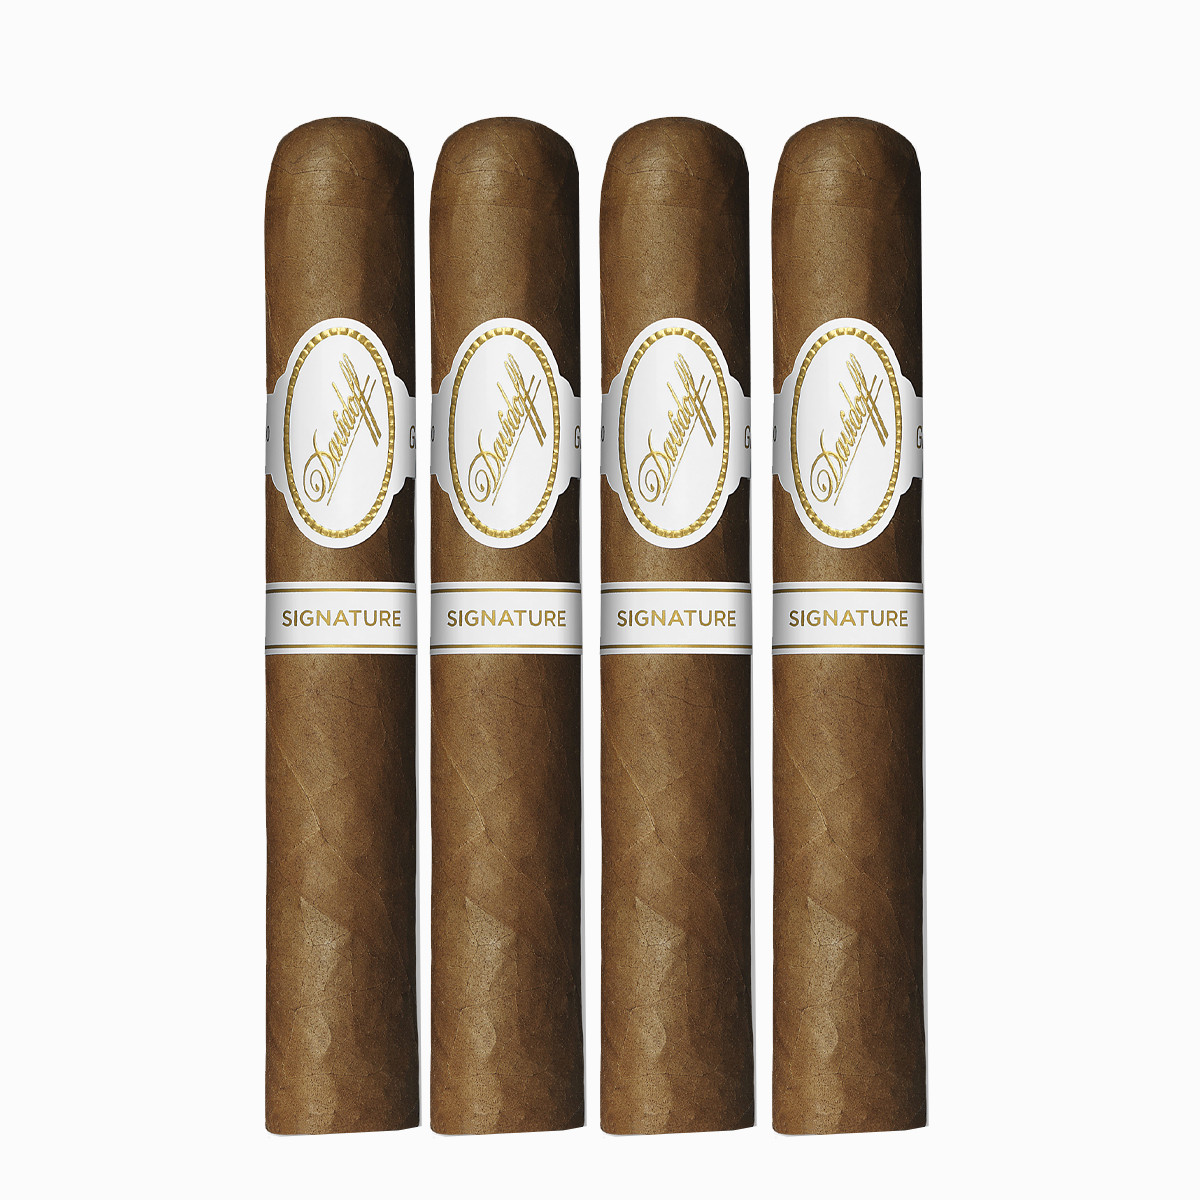 Davidoff Signature 6000 (5x48 / 4 pack)